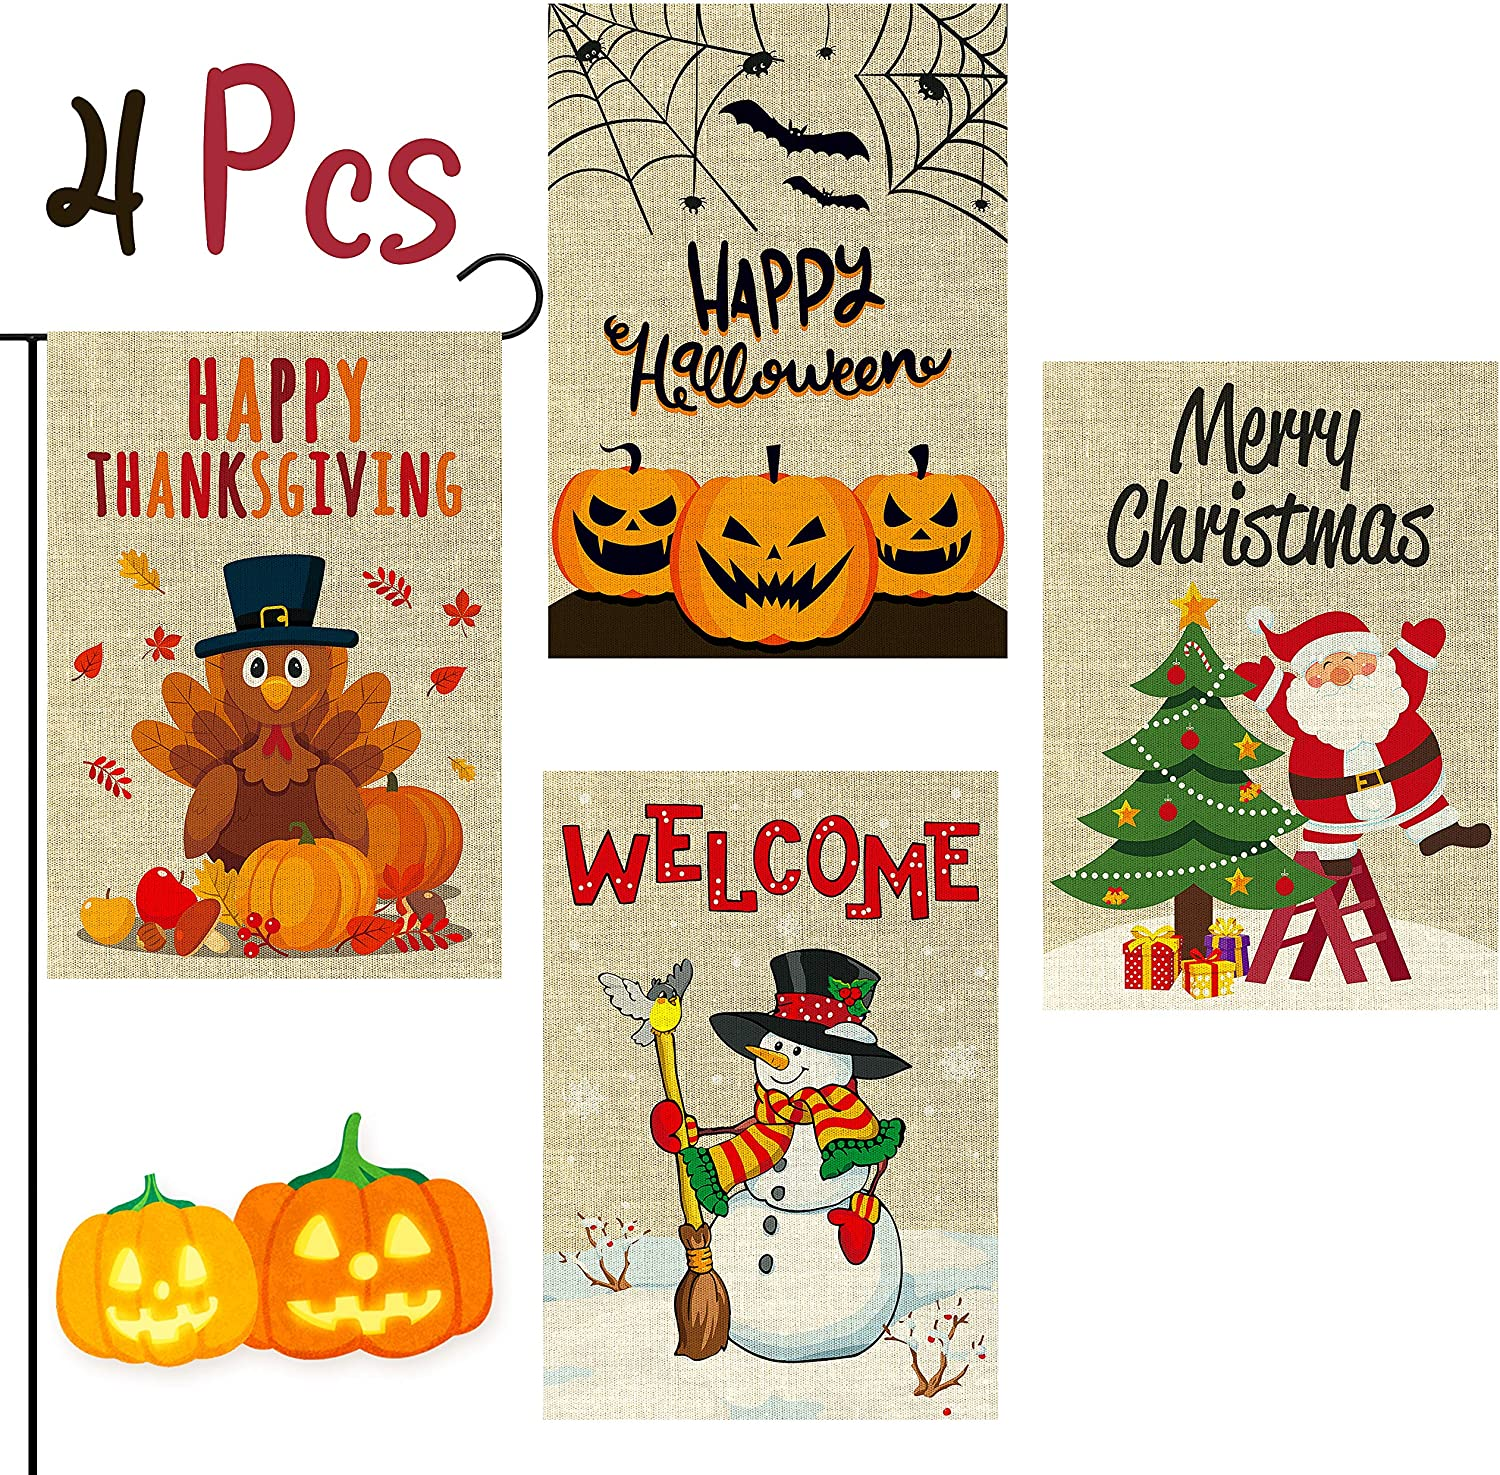 WATINC 4Pcs Garden Flag Happy Halloween Thanksgiving Merry Christmas Welcome Fall Winter Holiday Decorations Pumpkins Turkey Santa Snowman Double Sided Burlap House Flags for Home 12.4 x 18.3 Inch